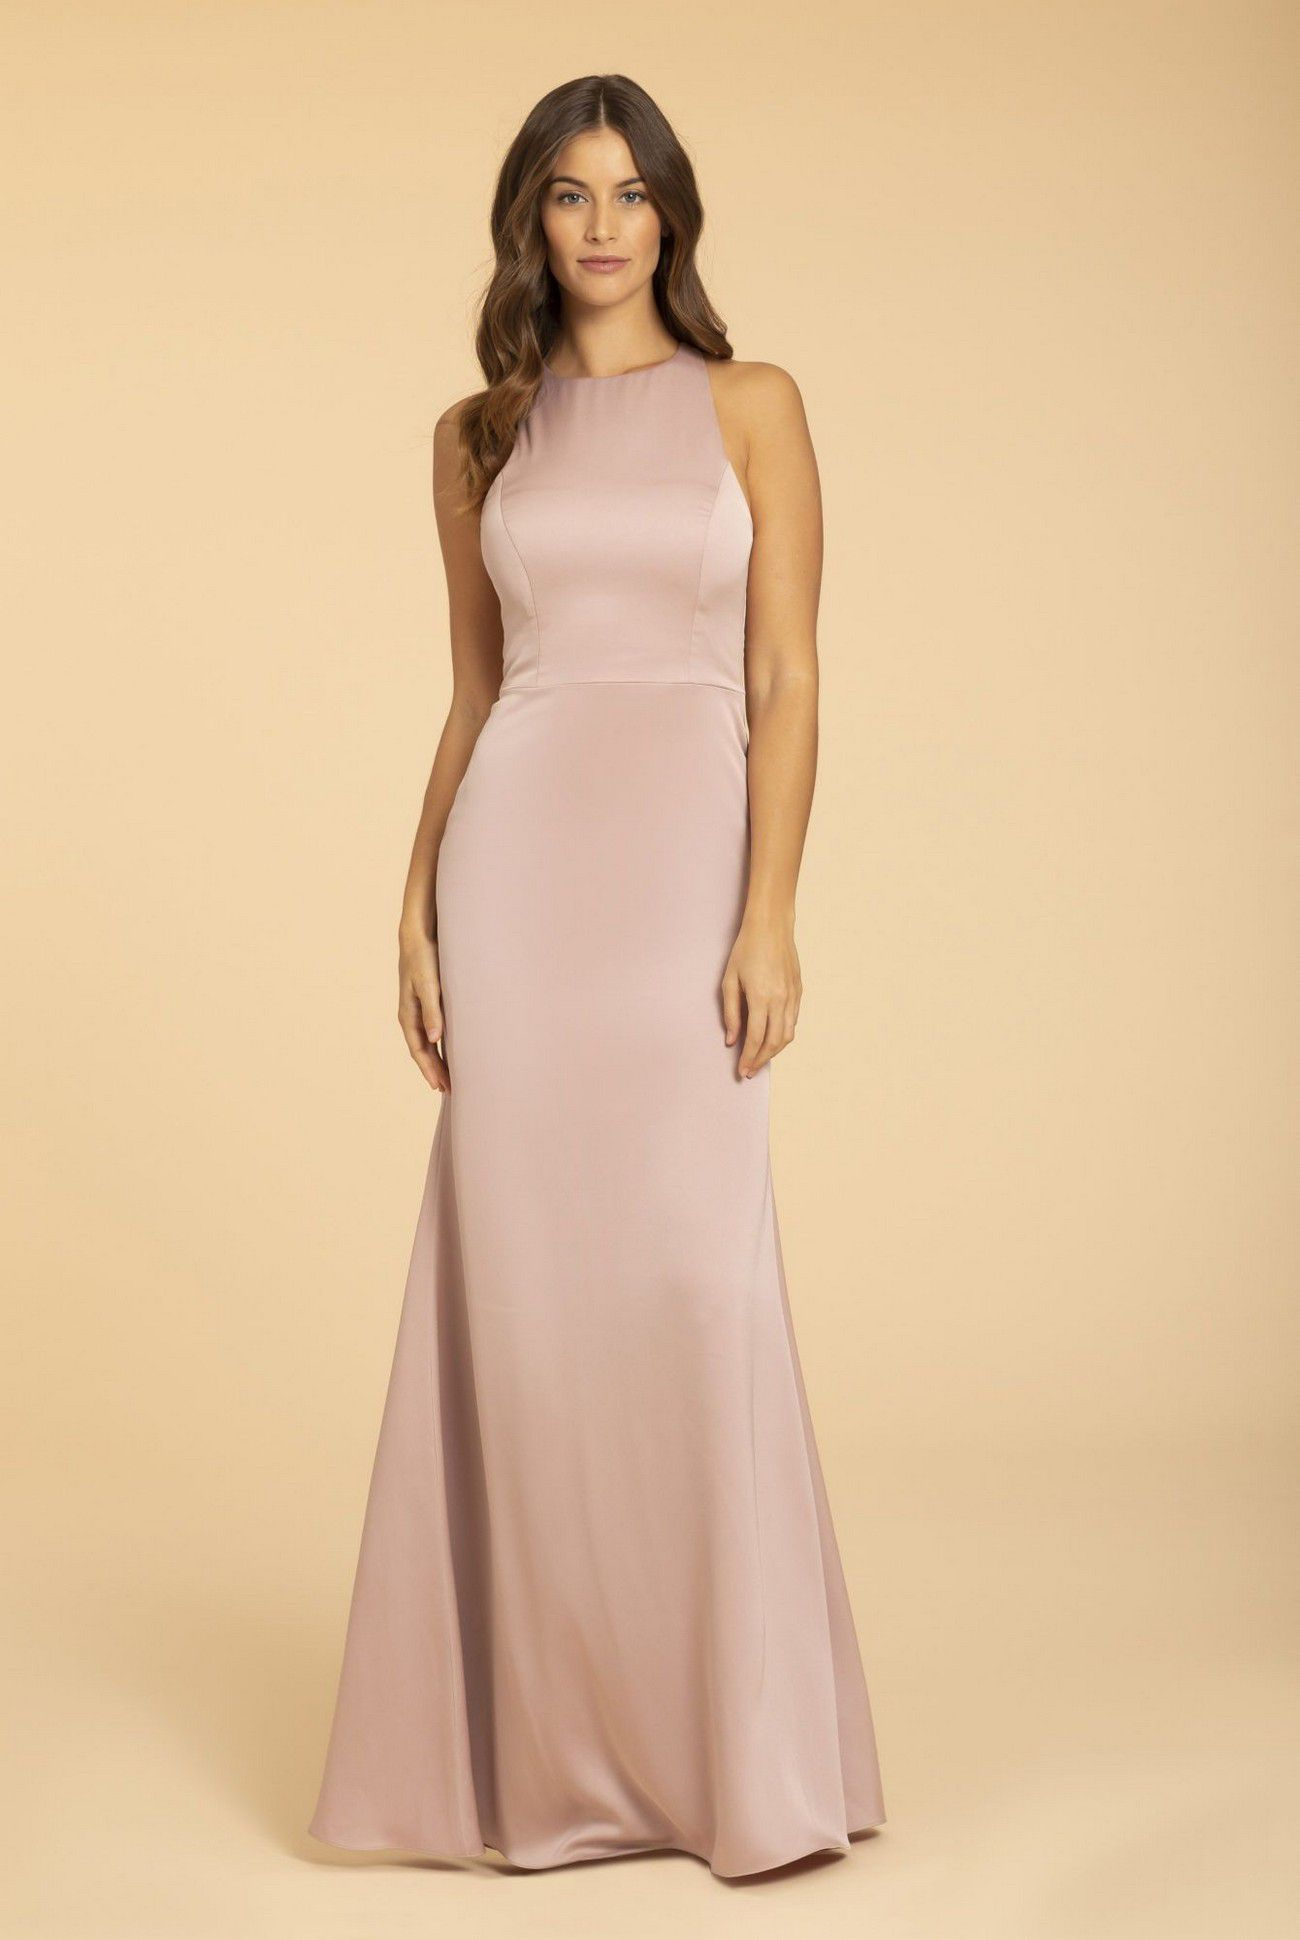 https://www.bridalreflections.com/wp-content/uploads/2019/10/hayley-paige-occasions-bridesmaids-spring-2020-style-52003_1-1340x2000.jpg